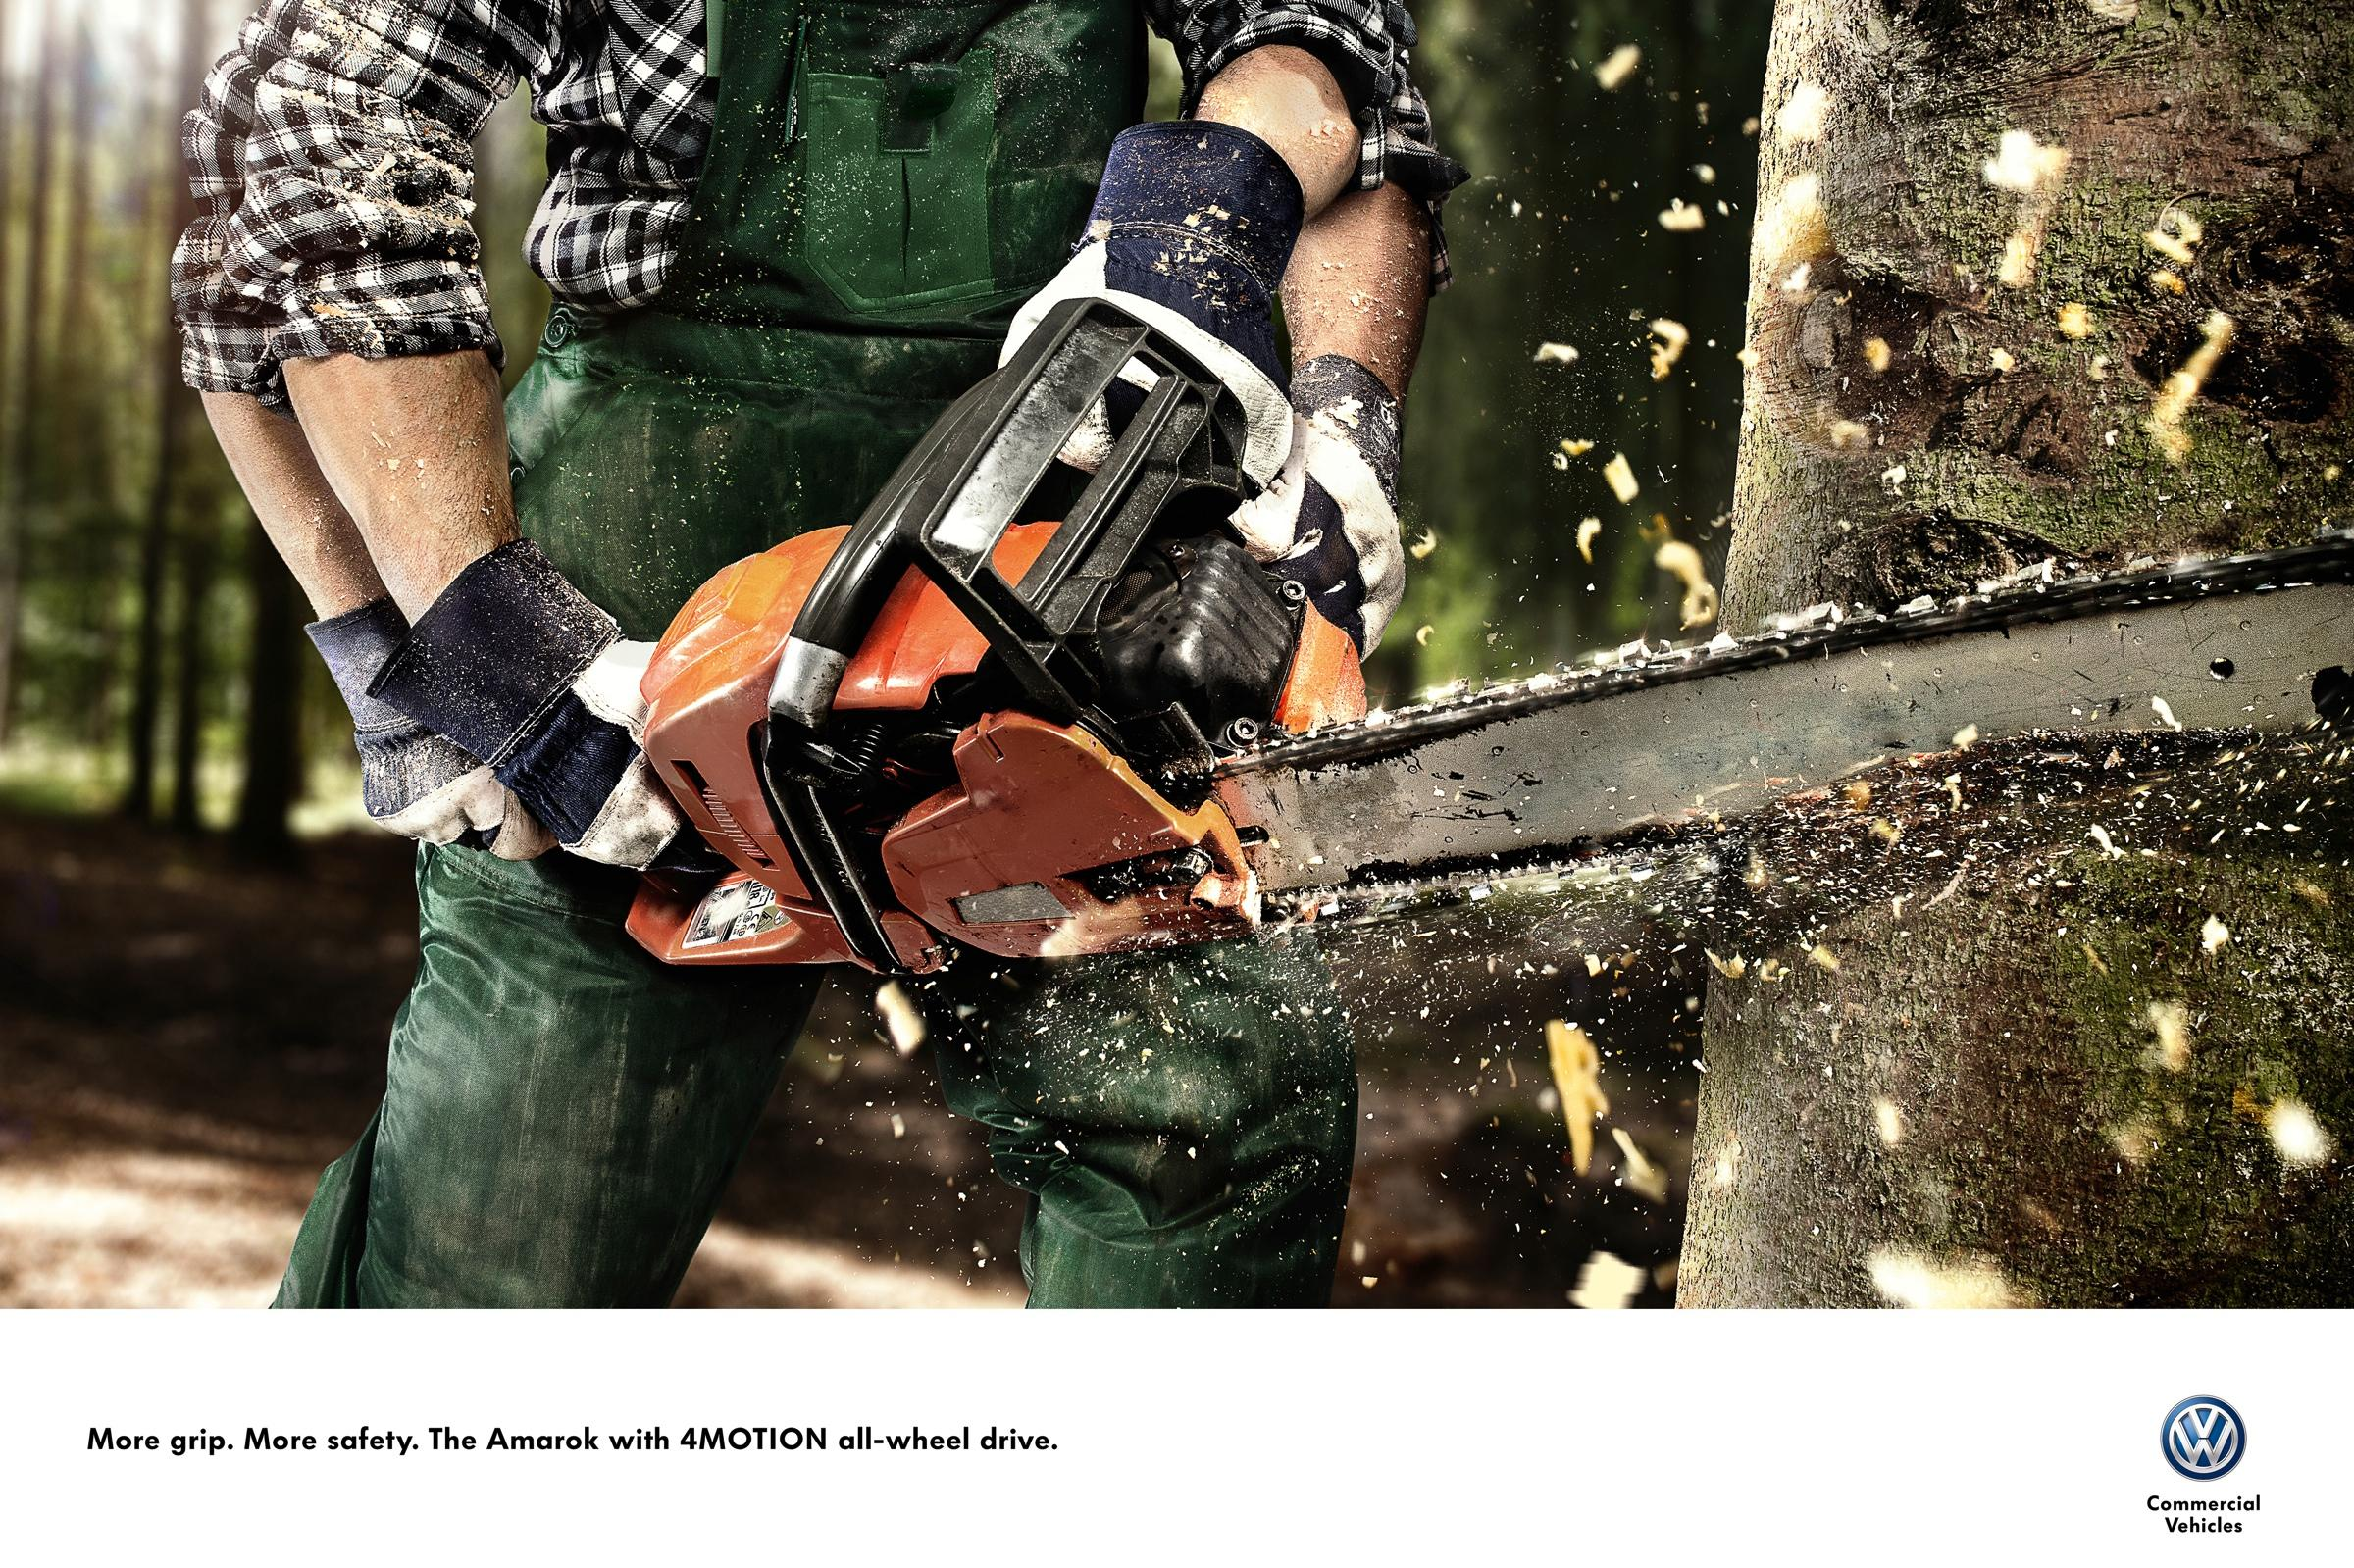 Volkswagen Print Ad -  More Grip. More Safety., 2